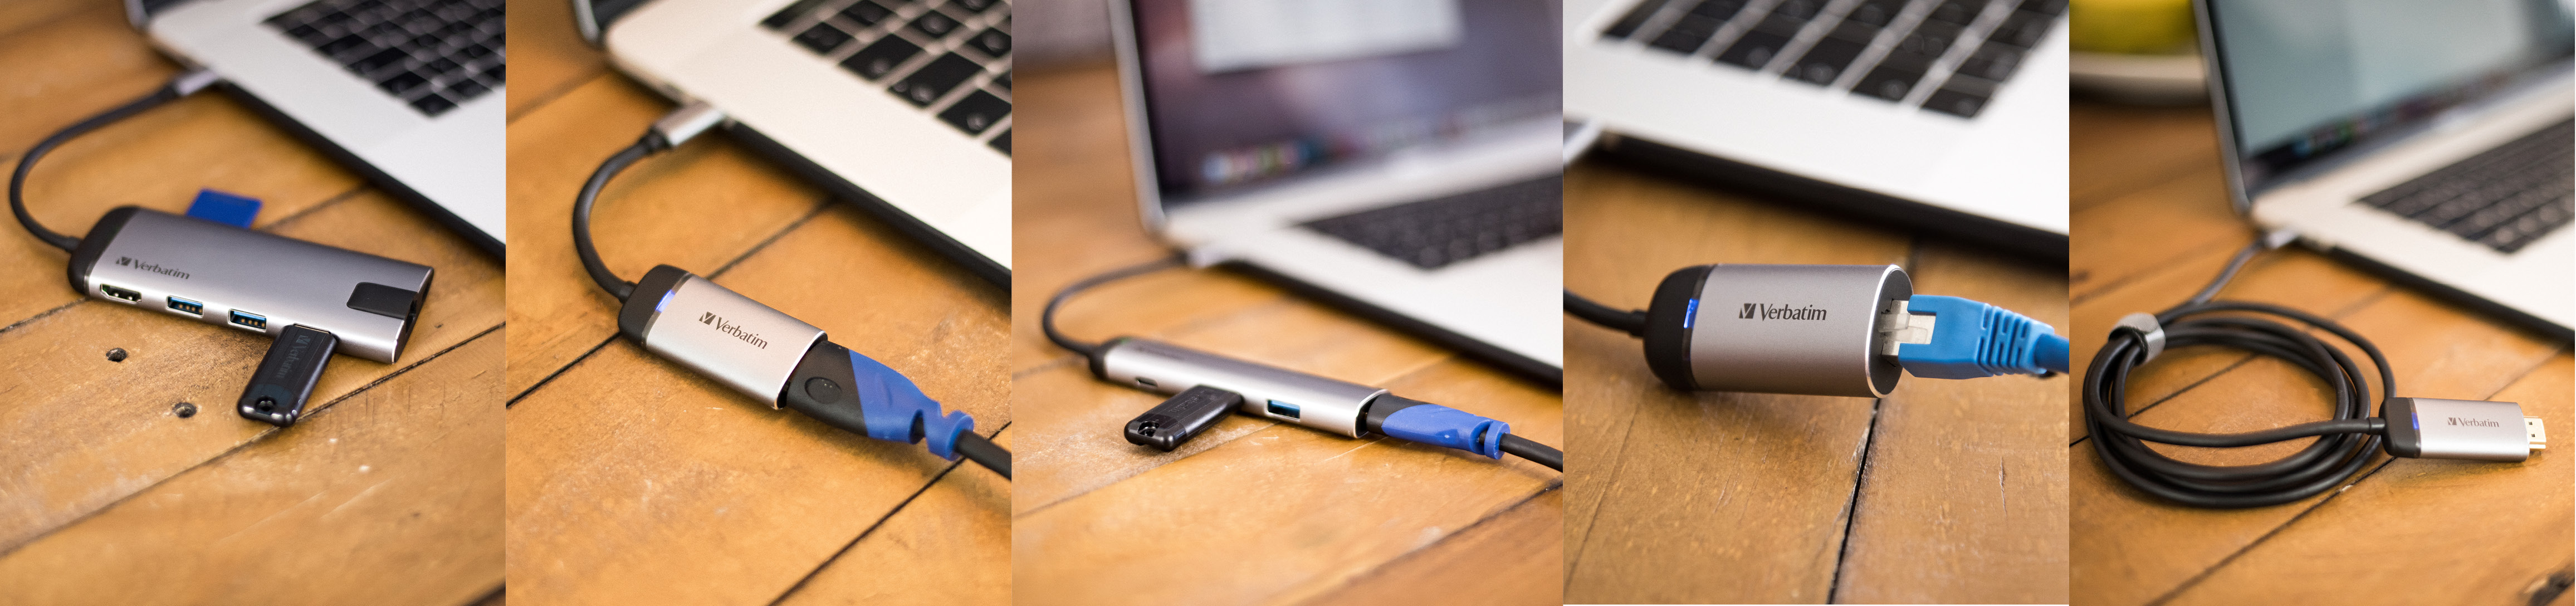 Adaptador USB-C™ Verbatim a Gigabit Ethernet